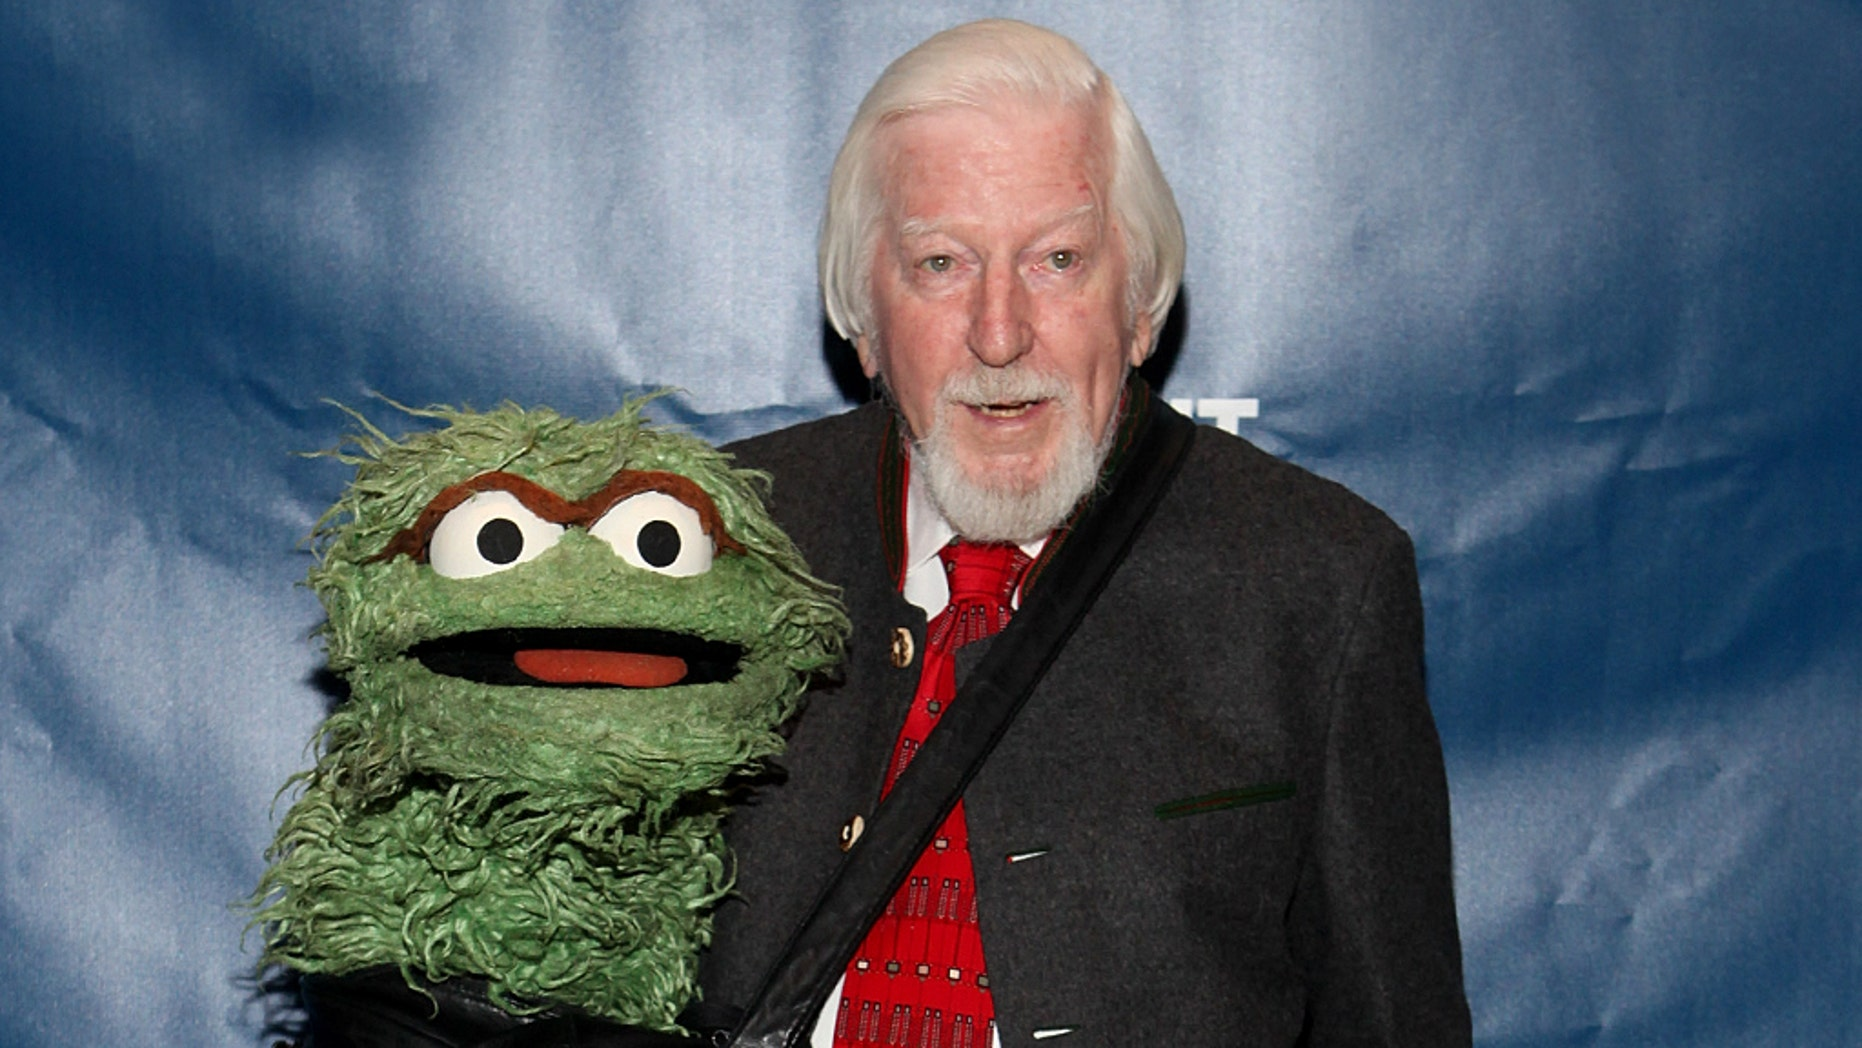 'Sesame Street': Big Bird Actor Caroll Spinney Retiring From Series